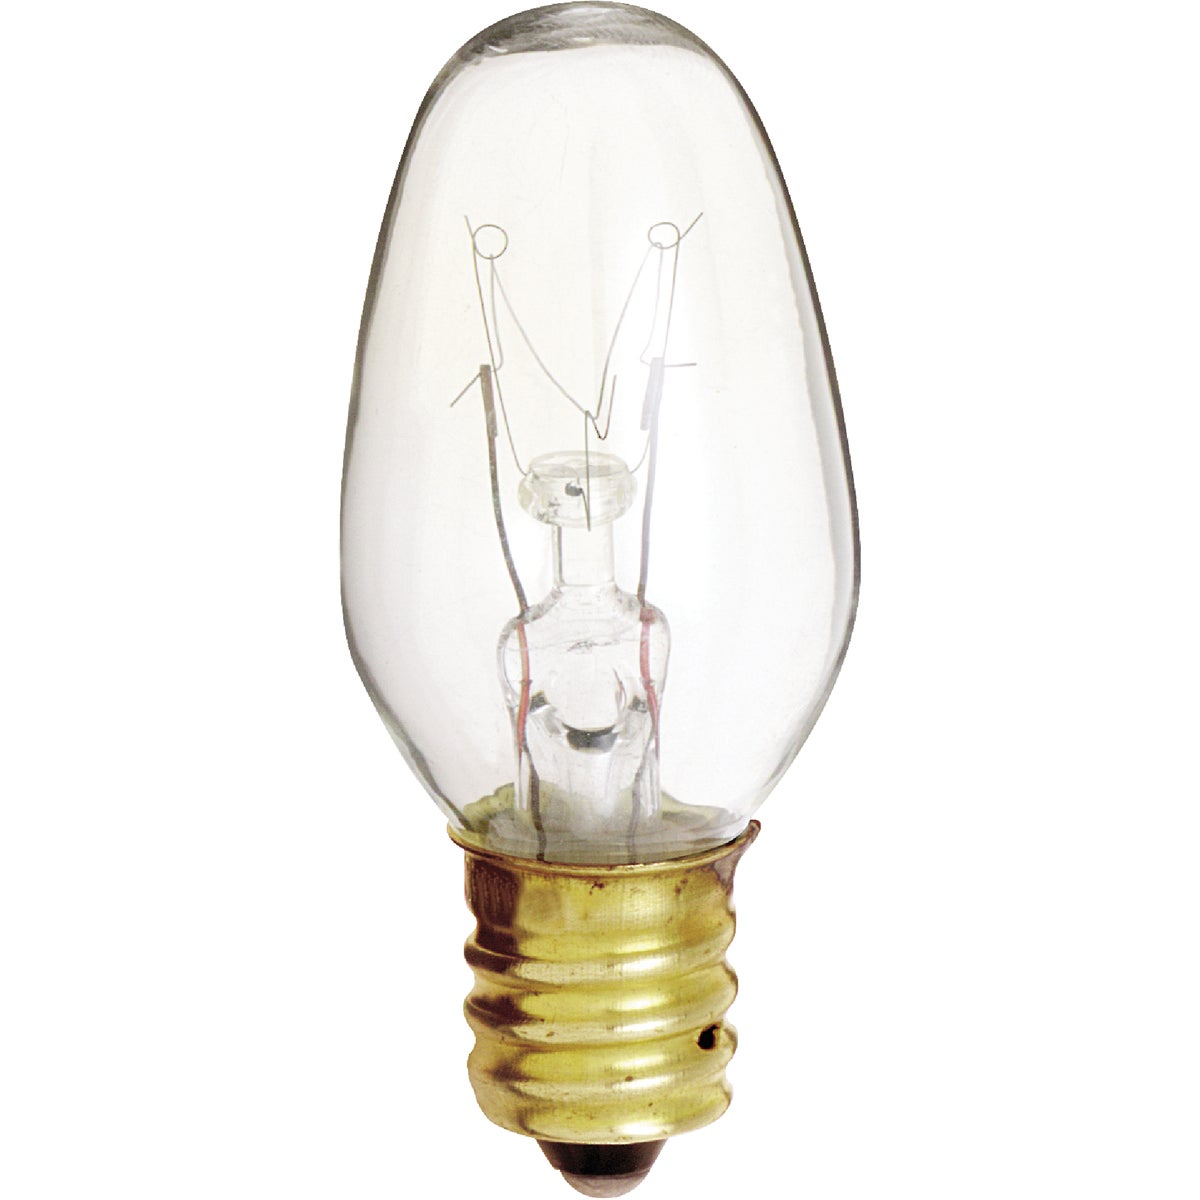 7W CLR NIGHT LIGHT BULB - 03791 by Westinghouse Lightng